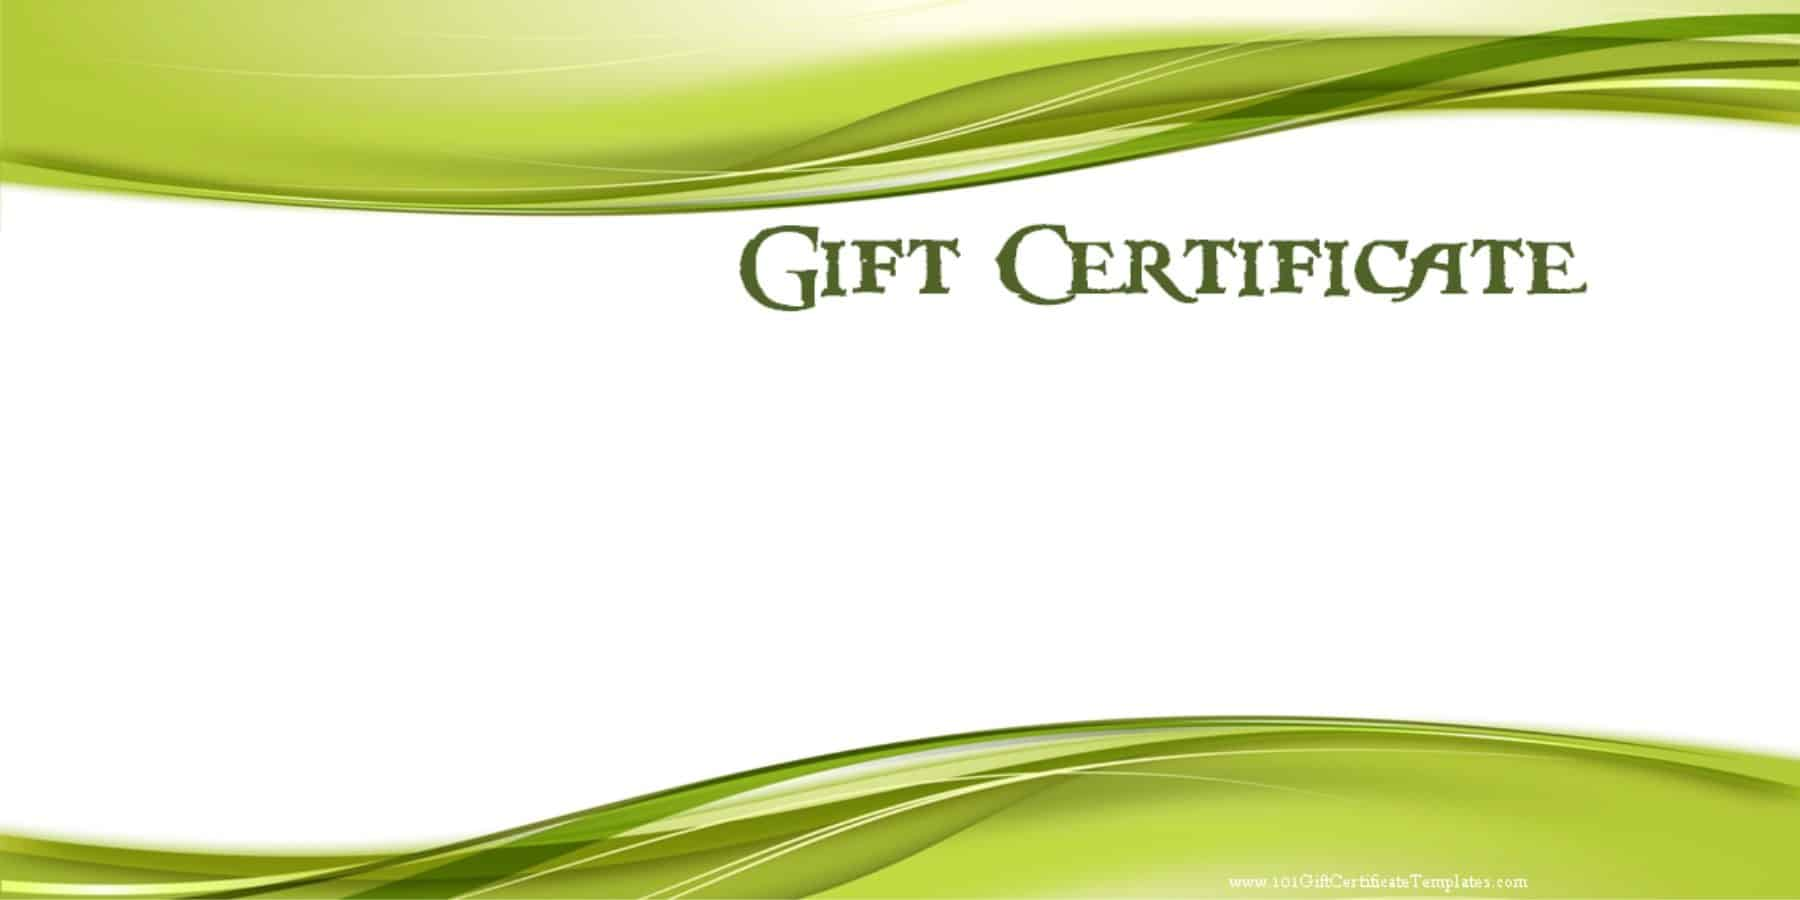 Blank Gift Certificate Which Can Be Customized  Gift Vouchers Templates